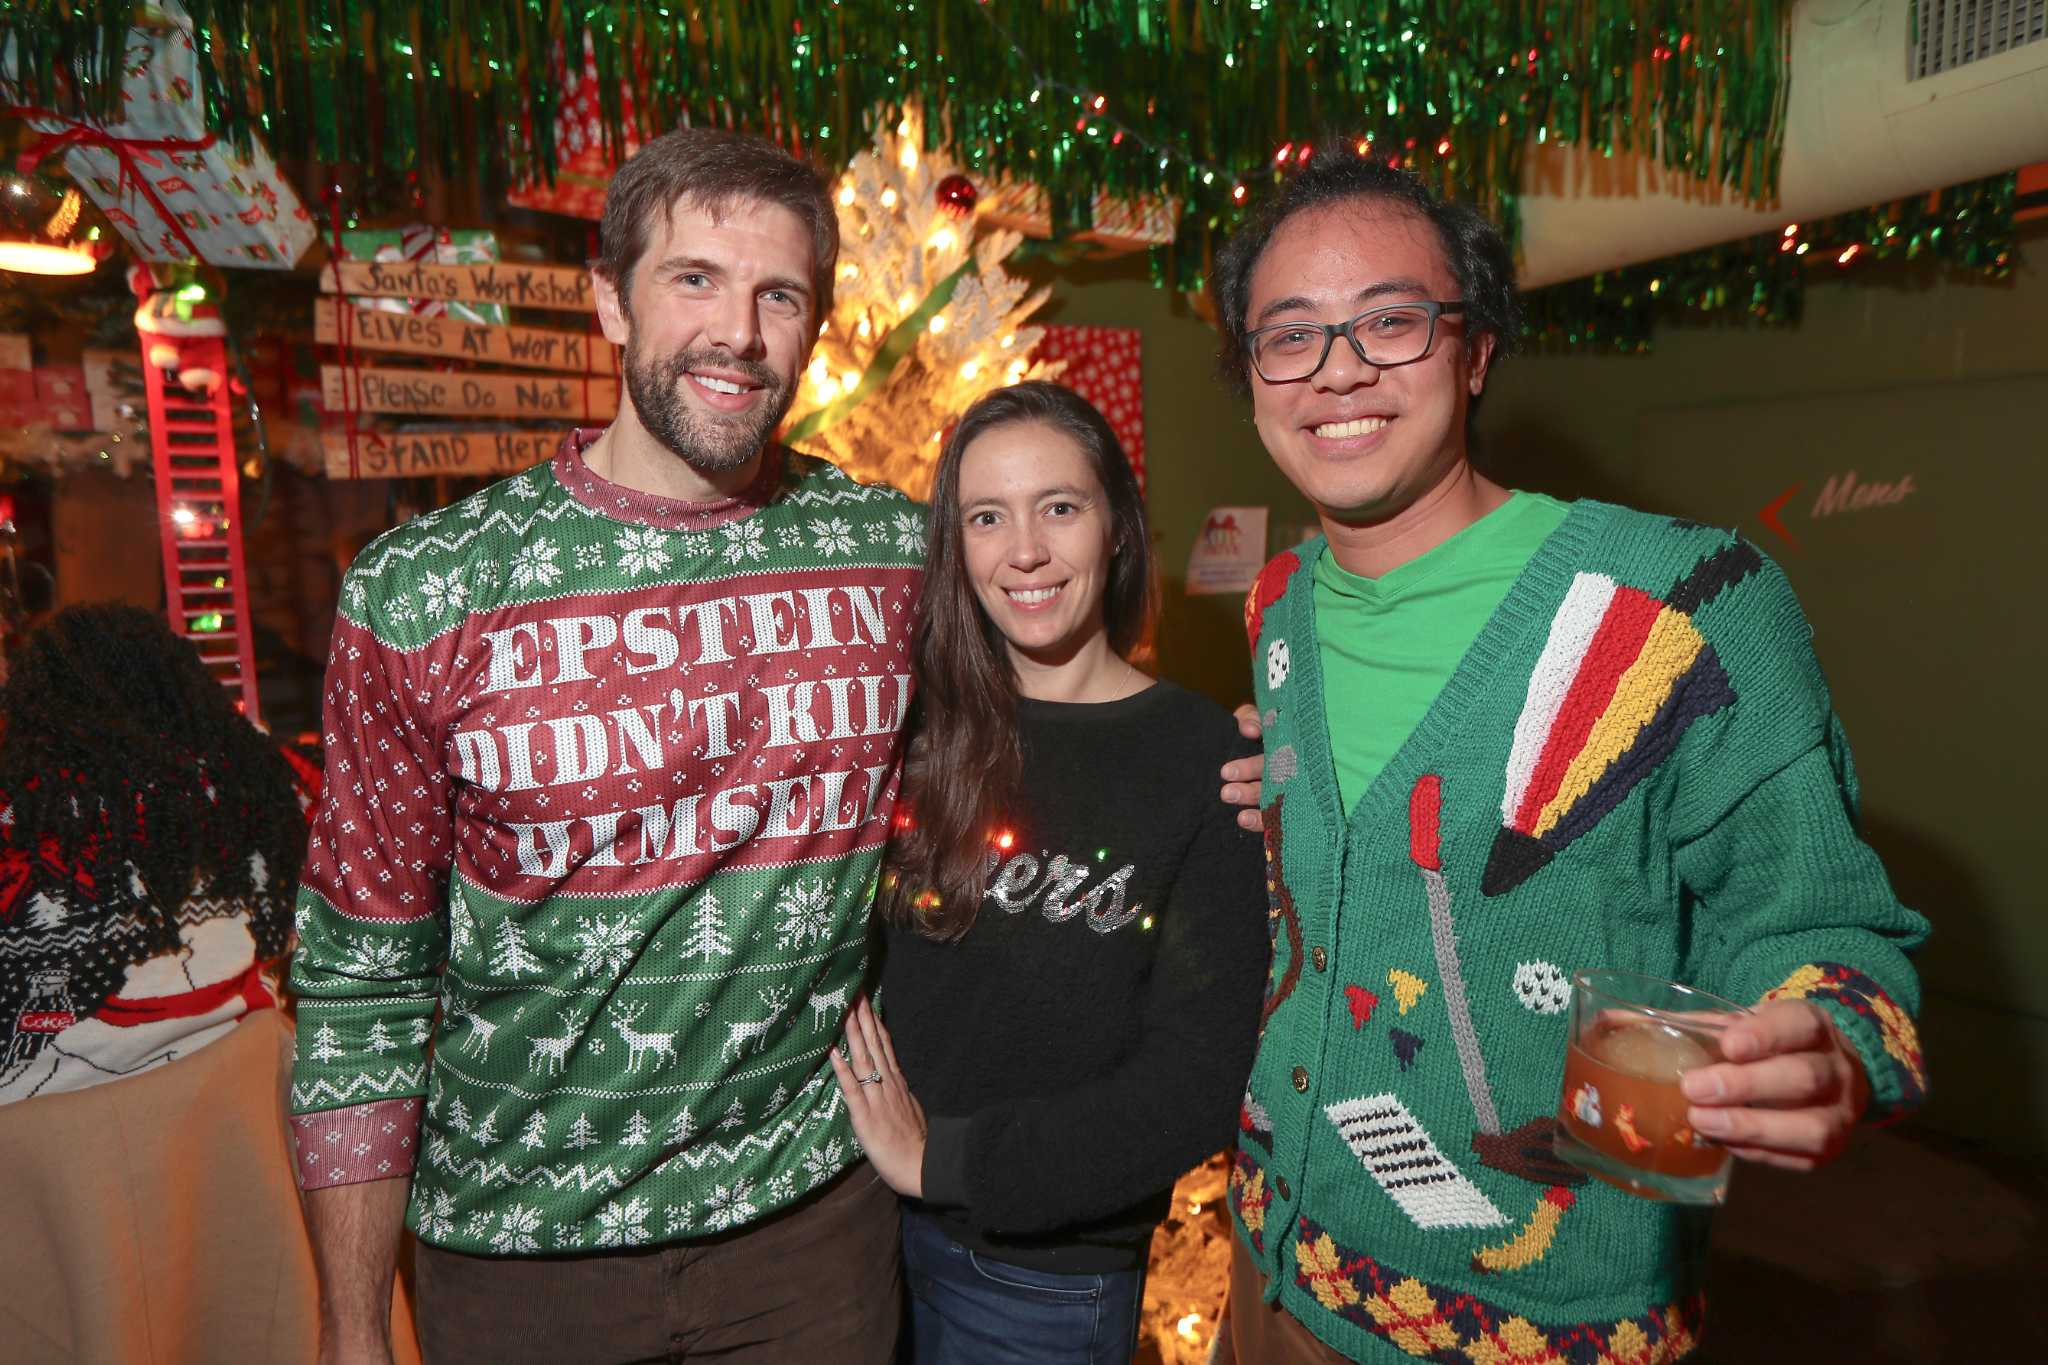 Ugly Christmas Sweaters And Going Viral A Night Out In Houston Houstonchronicle Com Find funny gifs, cute gifs, reaction gifs and more. https www houstonchronicle com life article ugly christmas sweaters and going viral a night 14886931 php